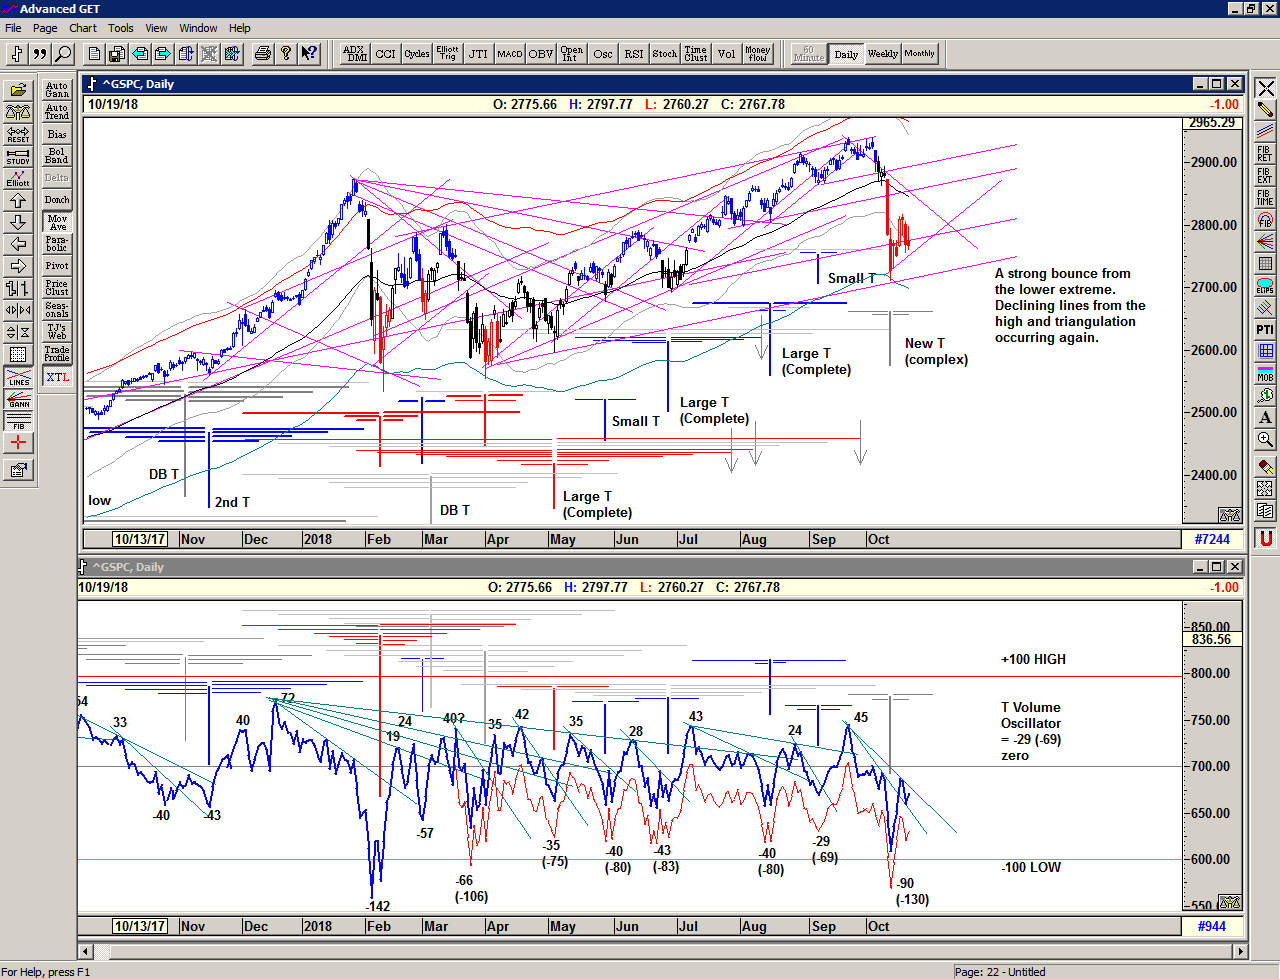 Chart of S&P 500 for 22 October 2018